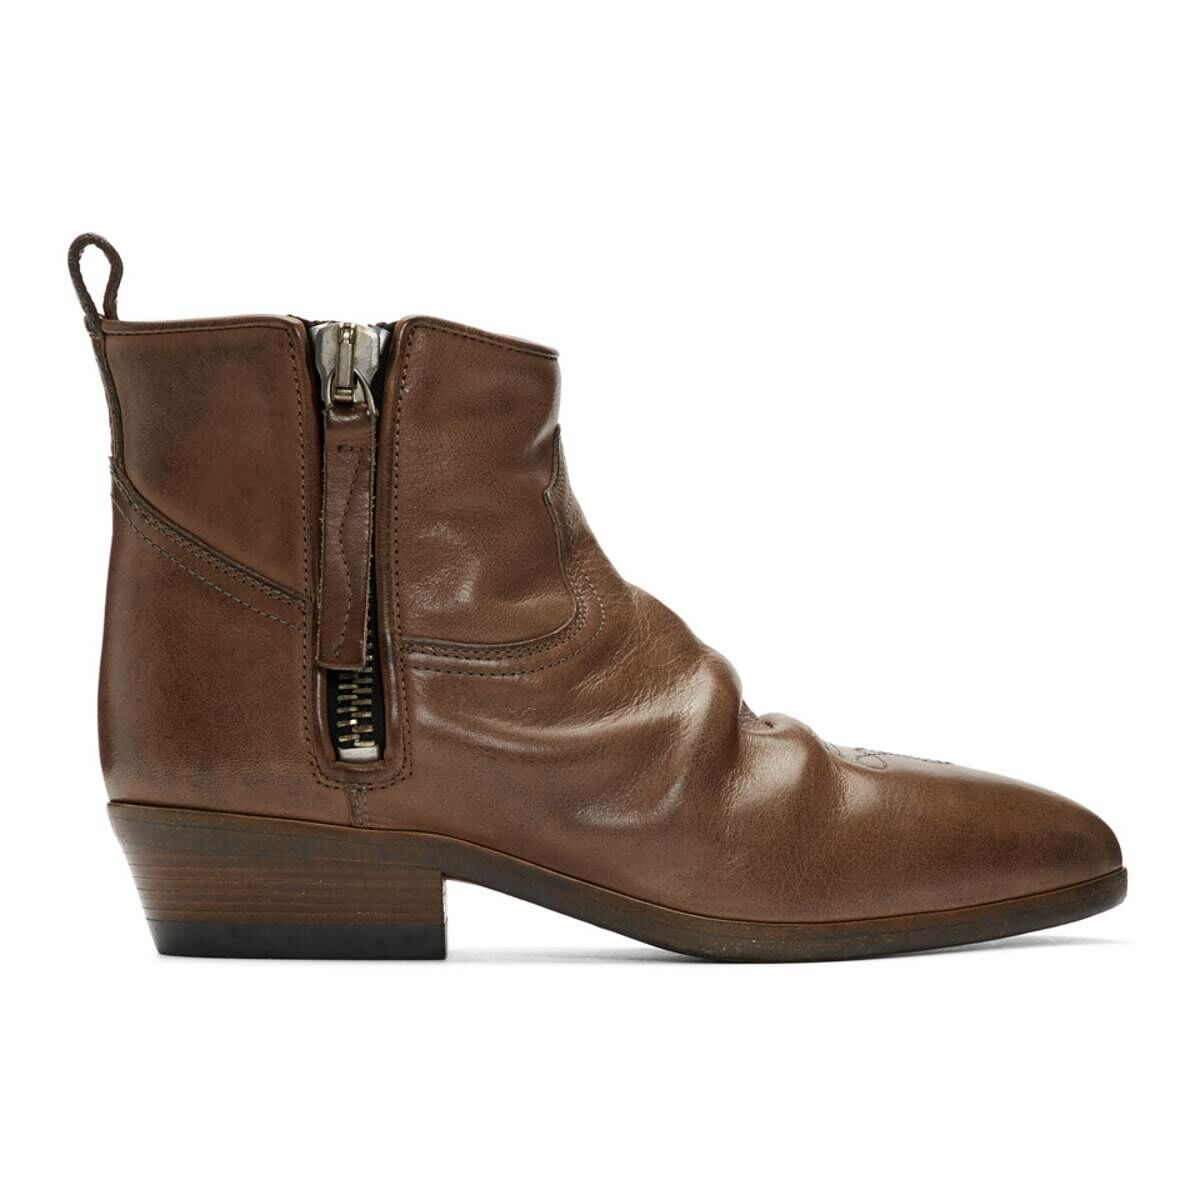 Golden Goose Brown Leather Vian Boots Ssense USA WOMEN Women SHOES Womens ANKLE BOOTS